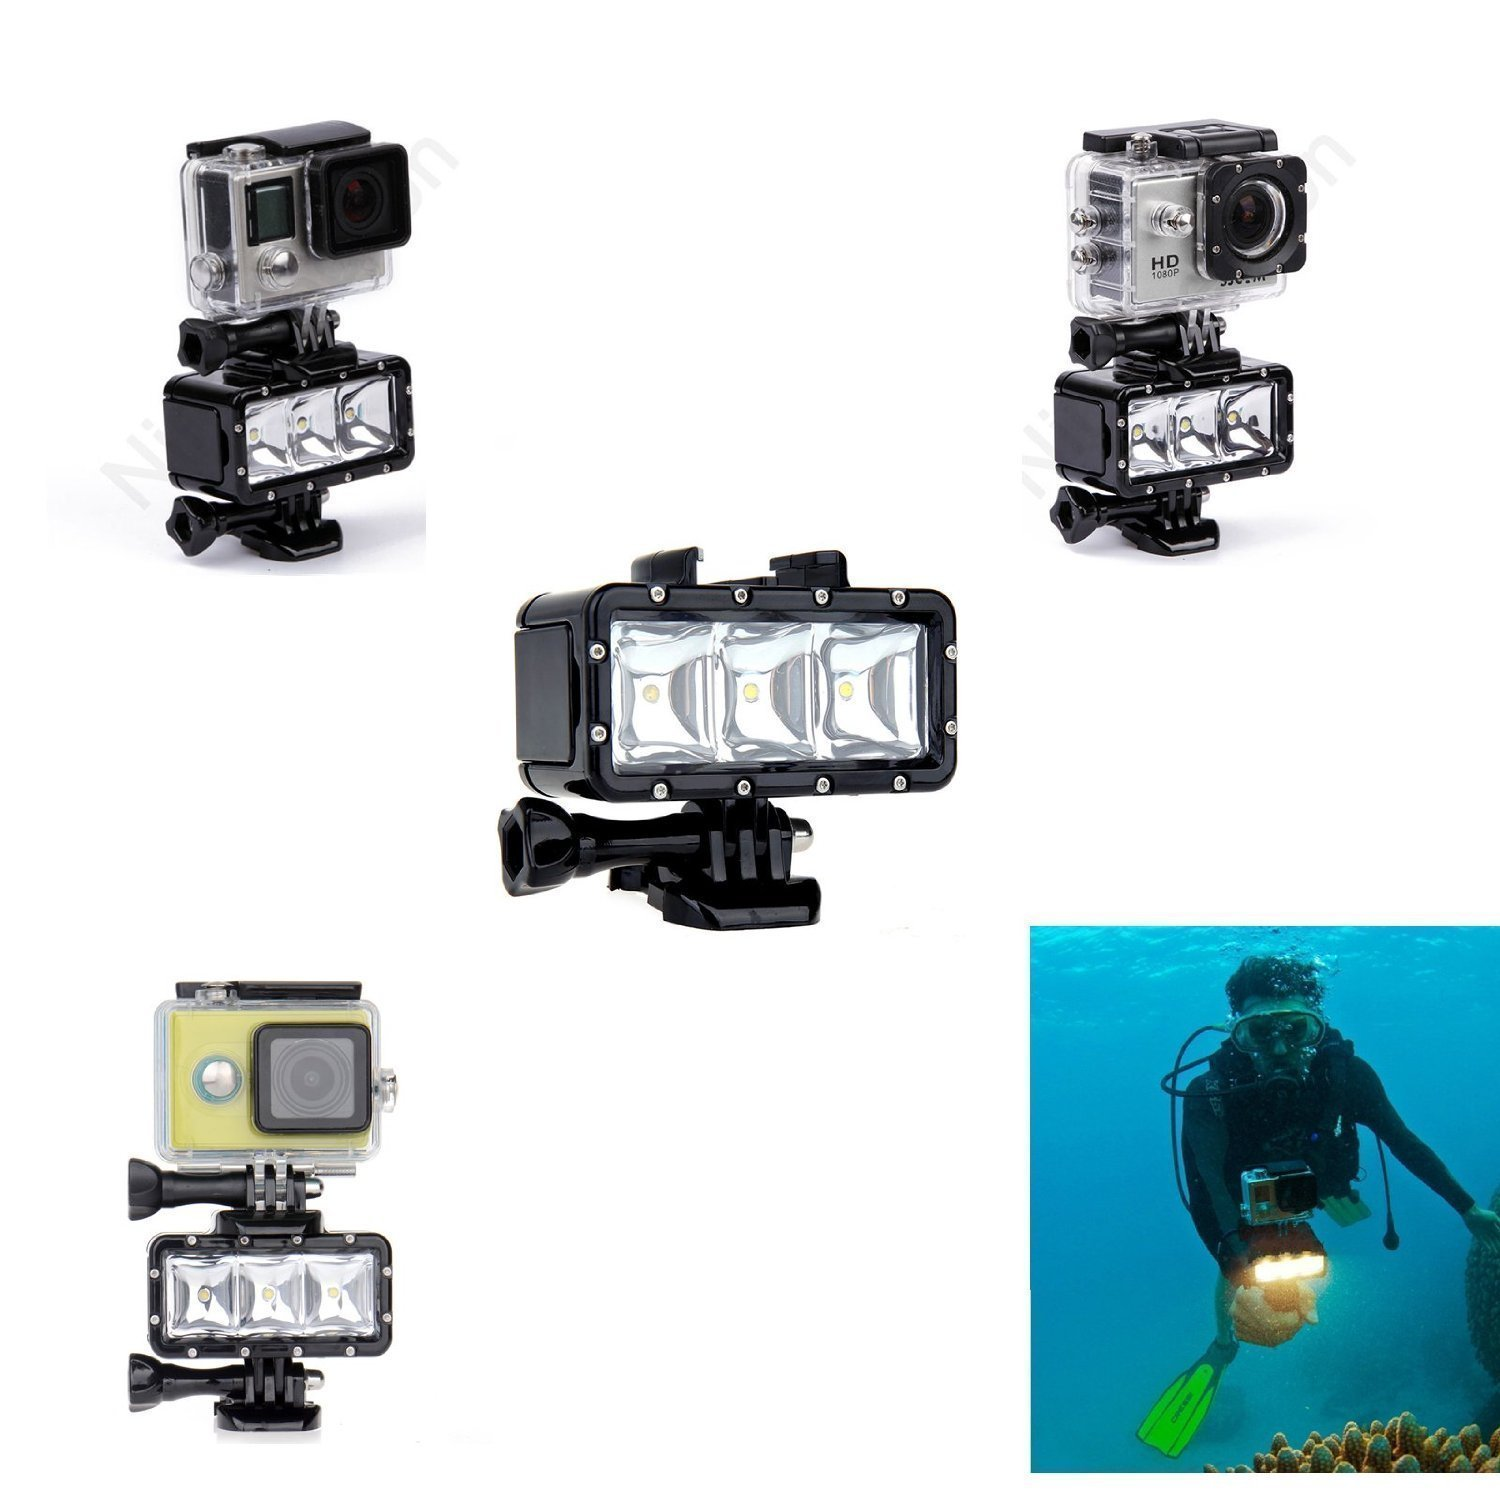 New Waterproof Diving Light High Power Dimmable LED Light Underwater Light For Gopro Hero 5/4/3+/3/2/SJCAM SJ4000/SJ5000/Xiaomi Yi with 1050mAh Built-in Rechargeable Battery Charging